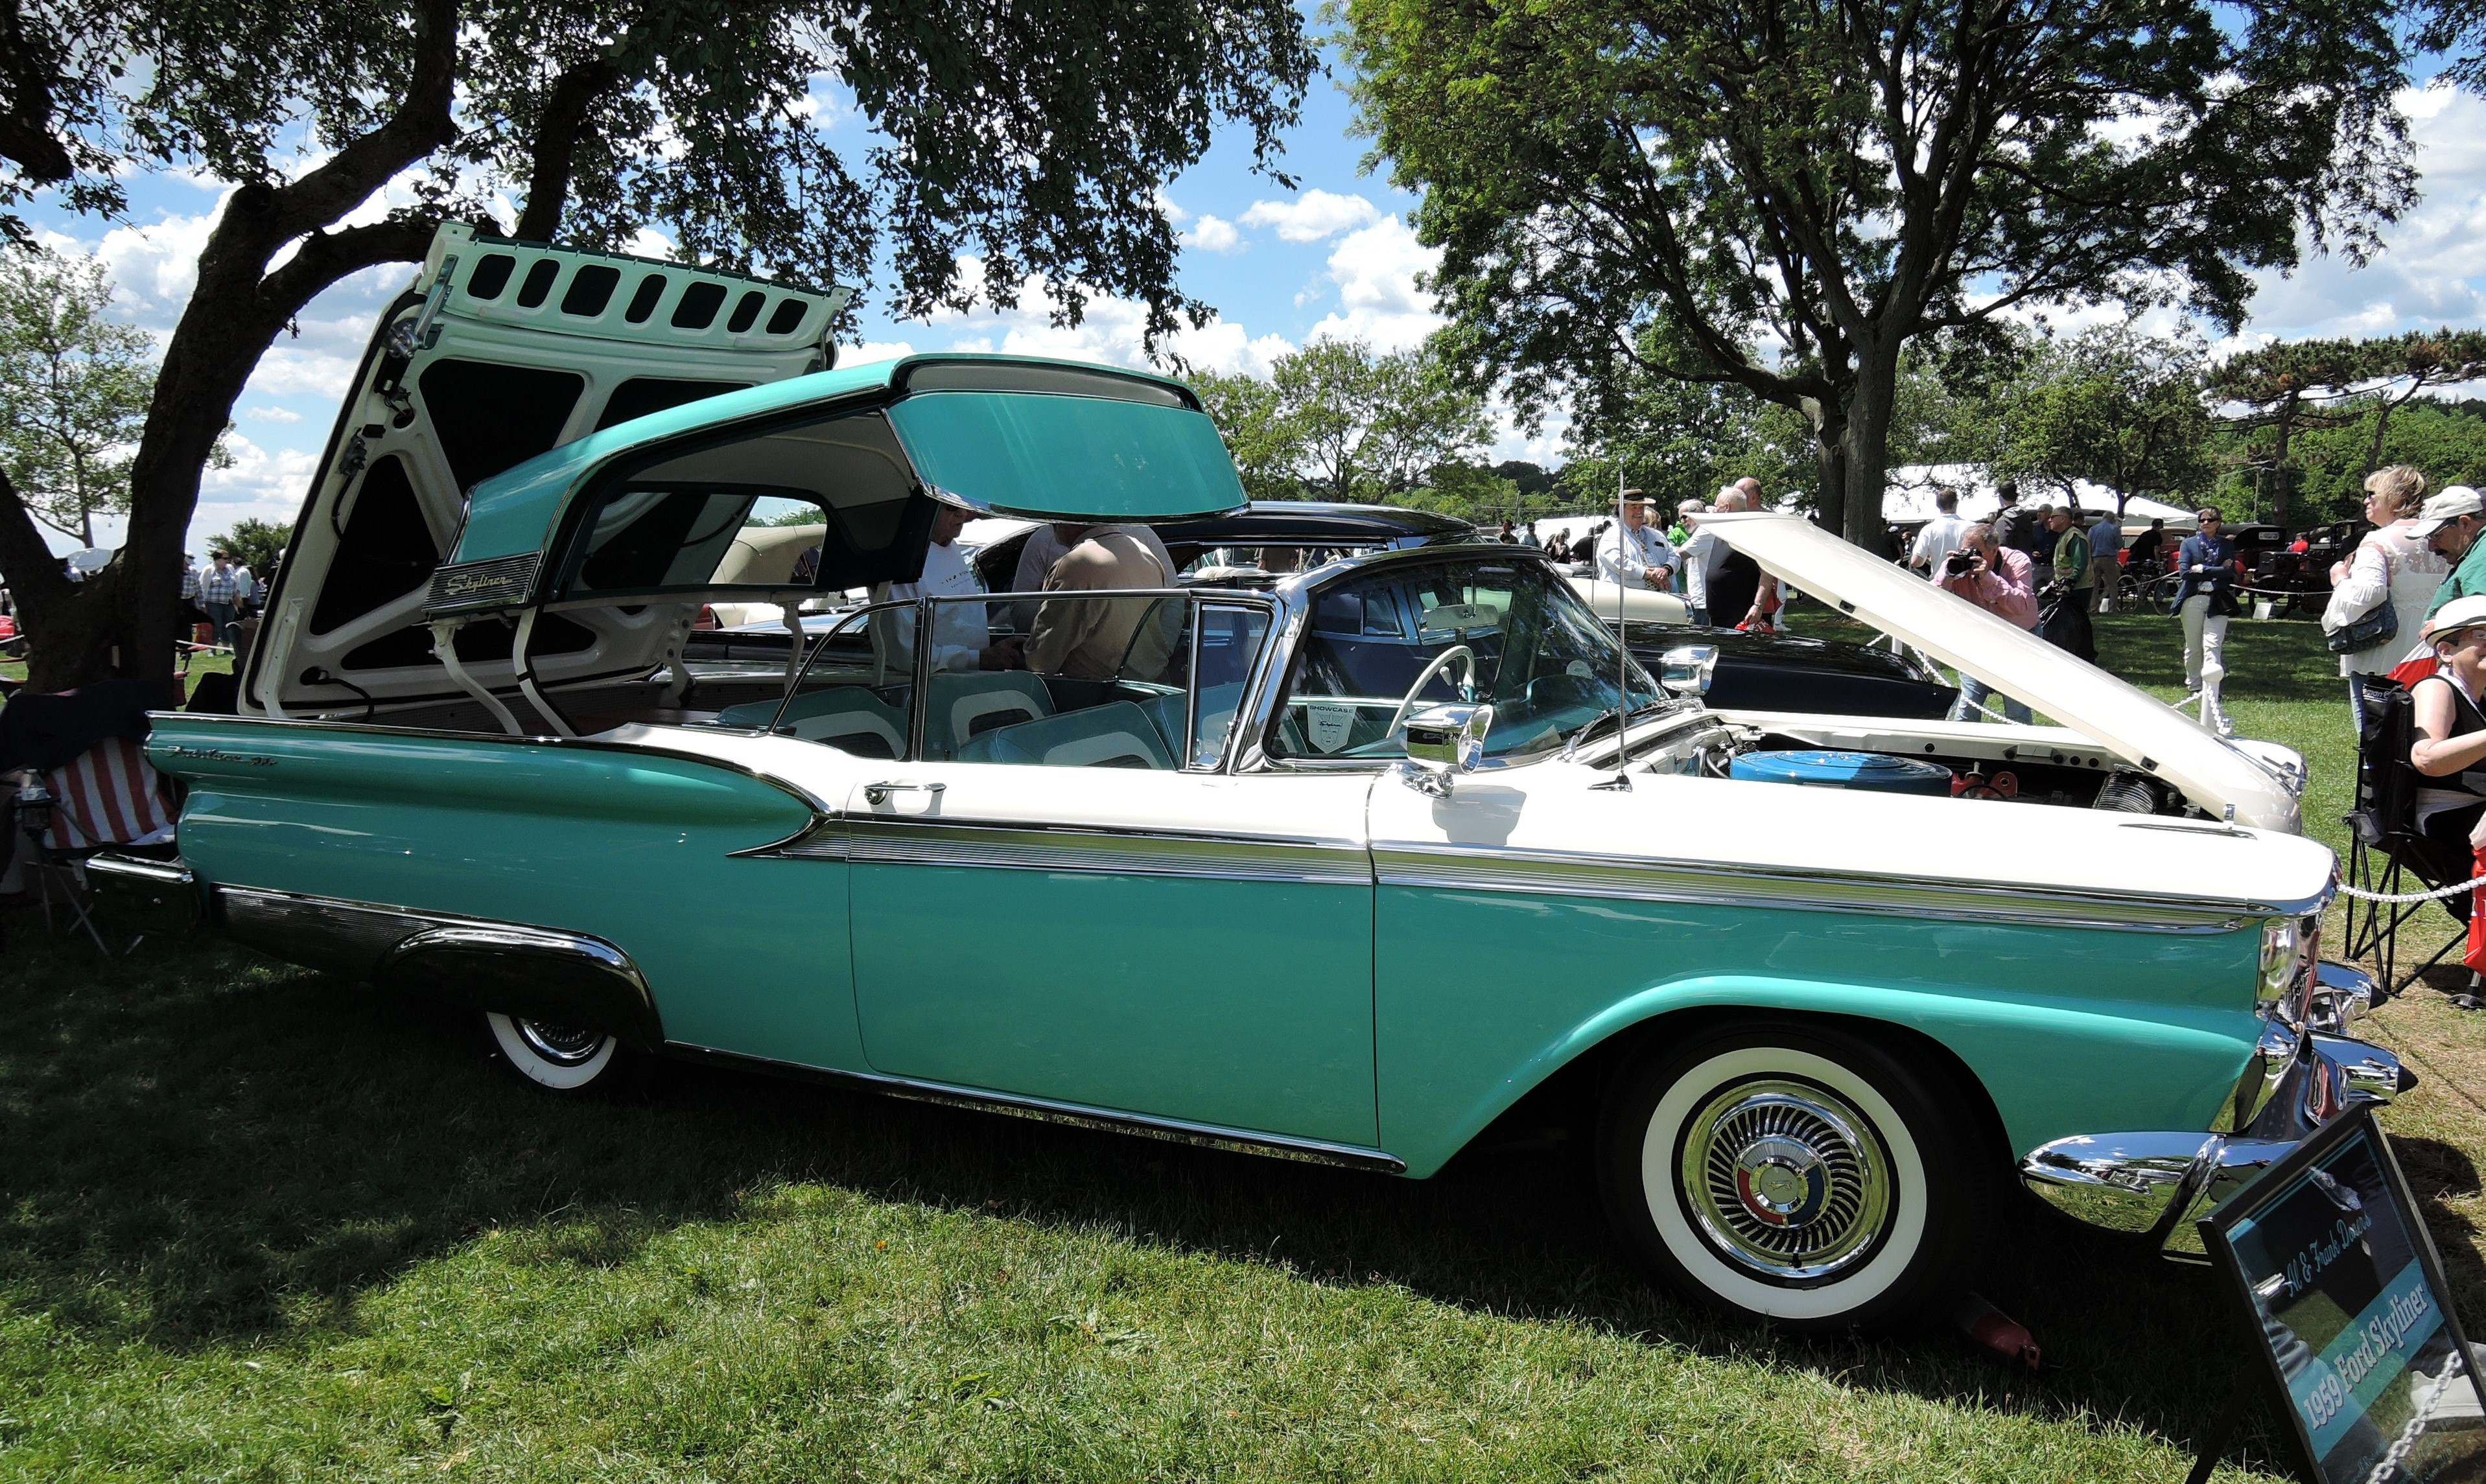 green/white 1959 Ford Fairlane with retractable hard-top - Greenwich Concours d'Elegance 2017